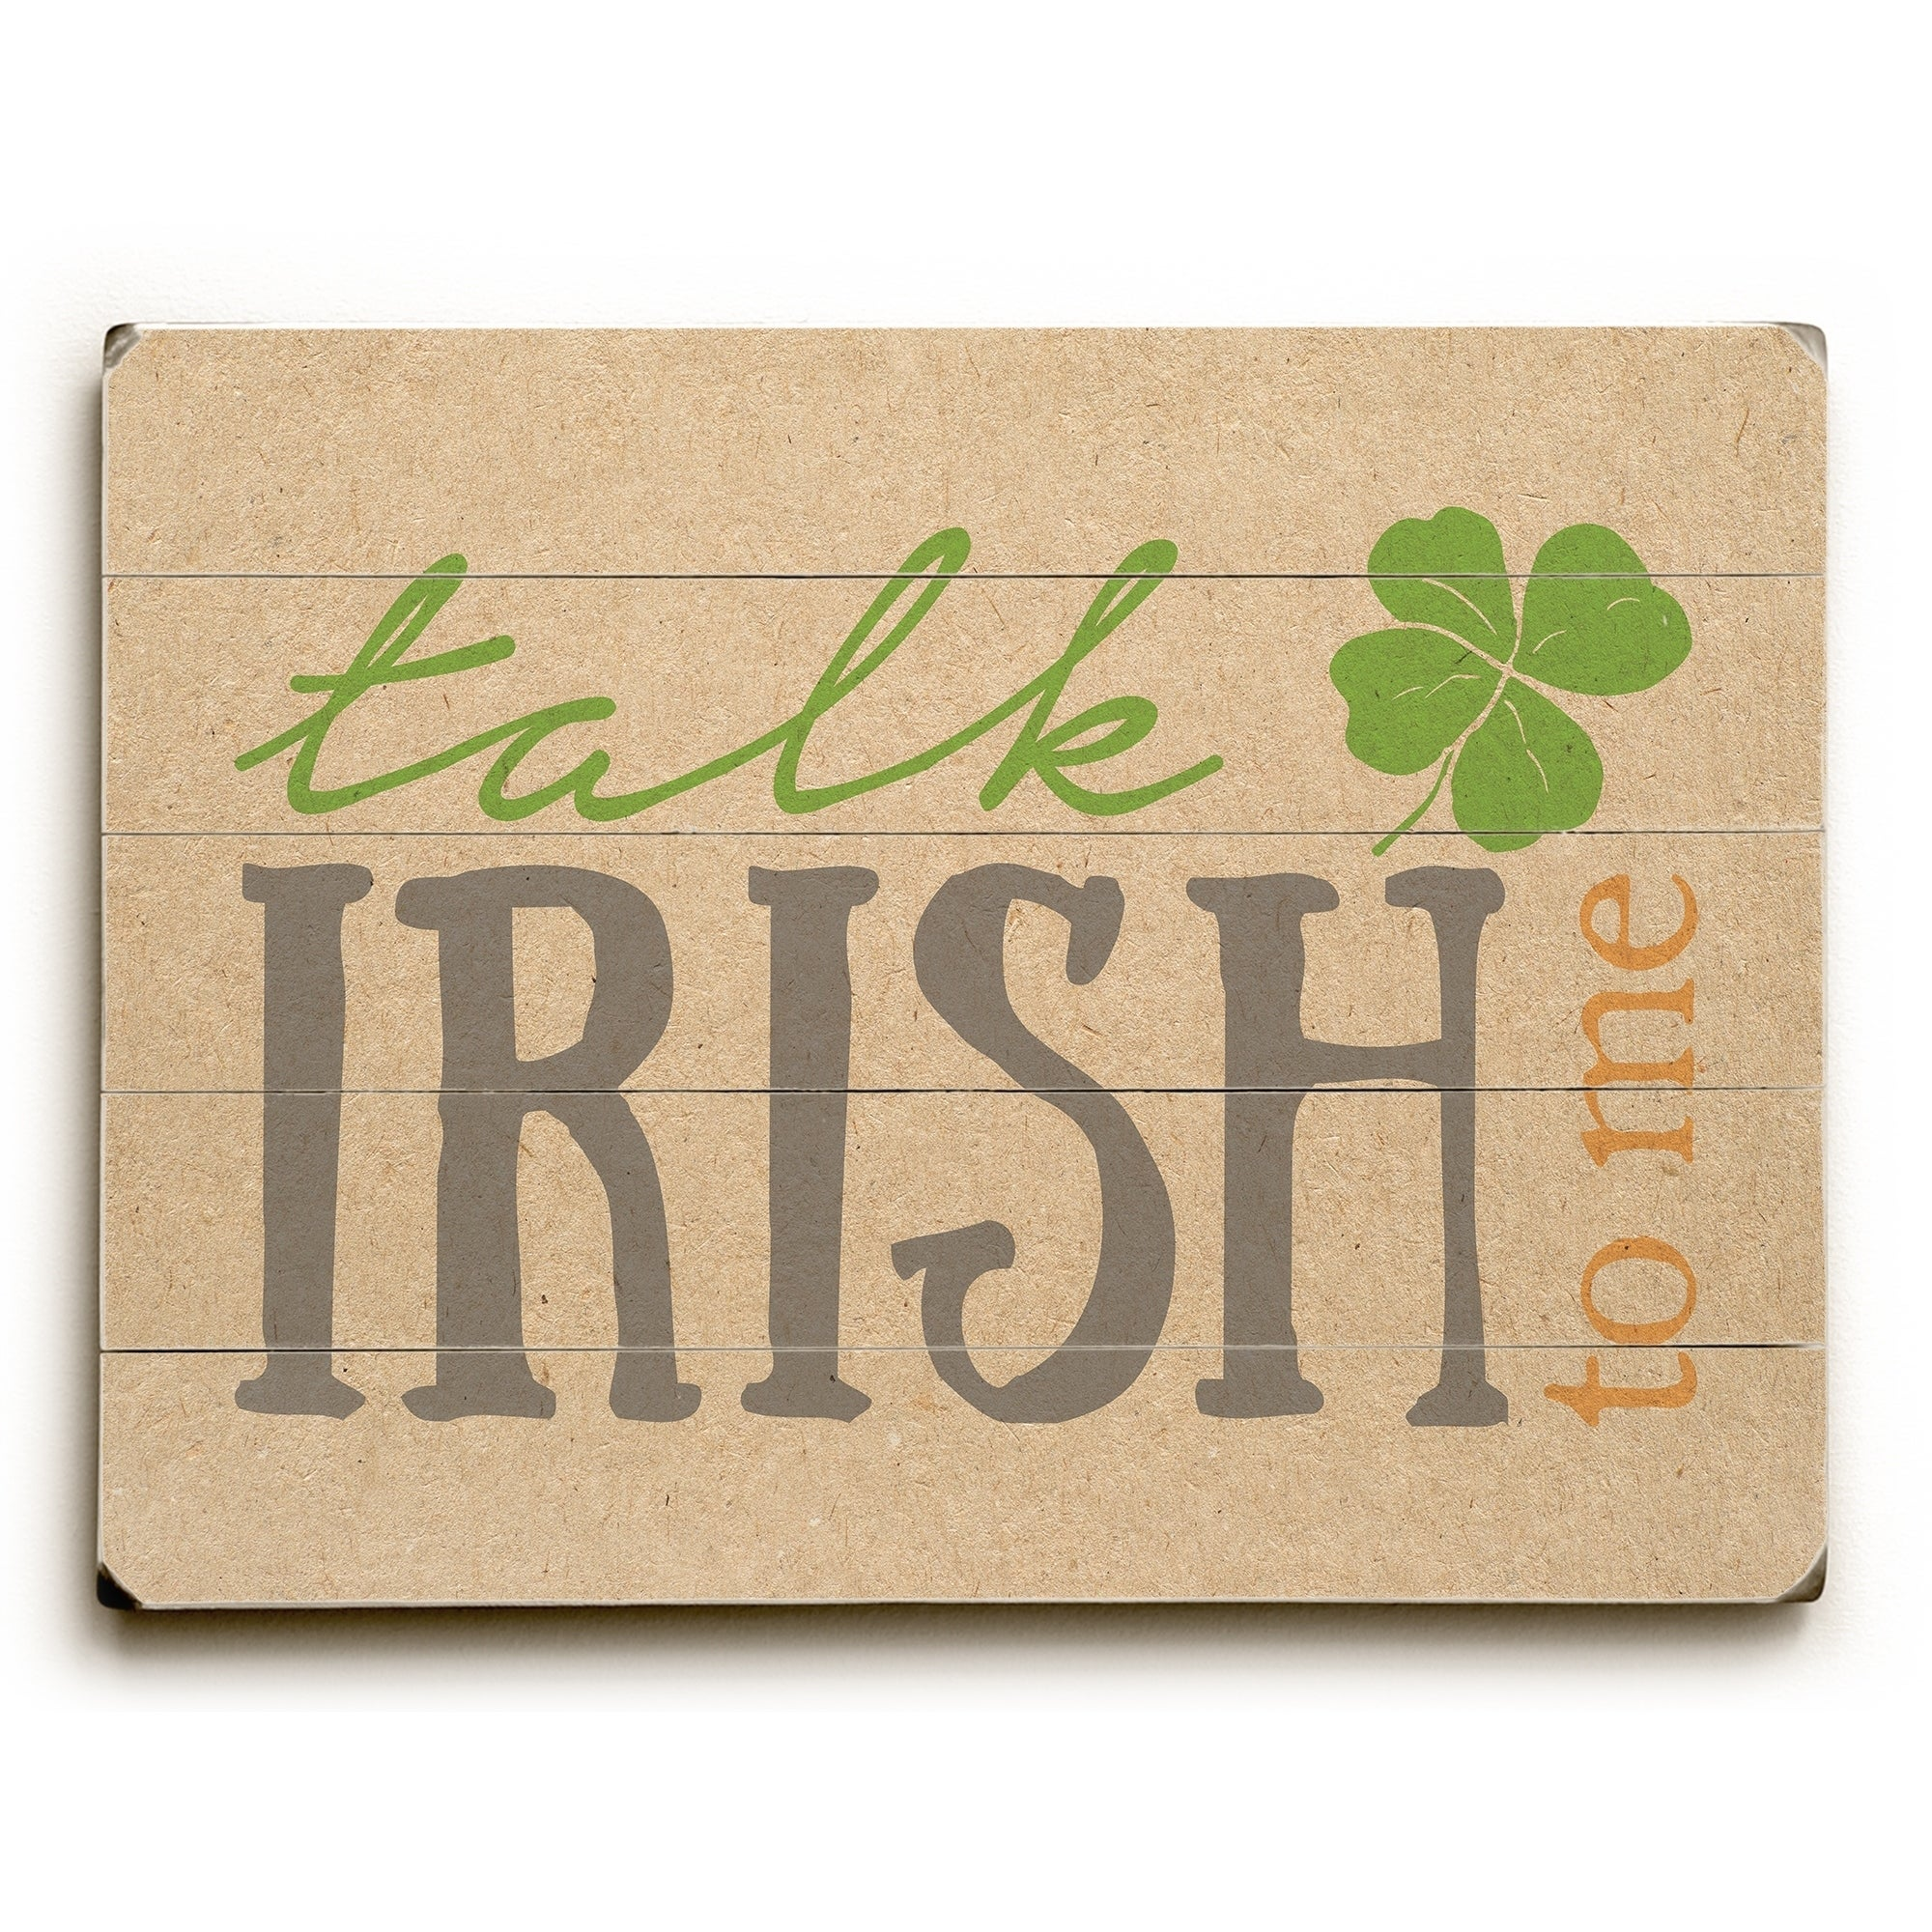 Magnificent Irish Wall Decor Crest - The Wall Art Decorations ...